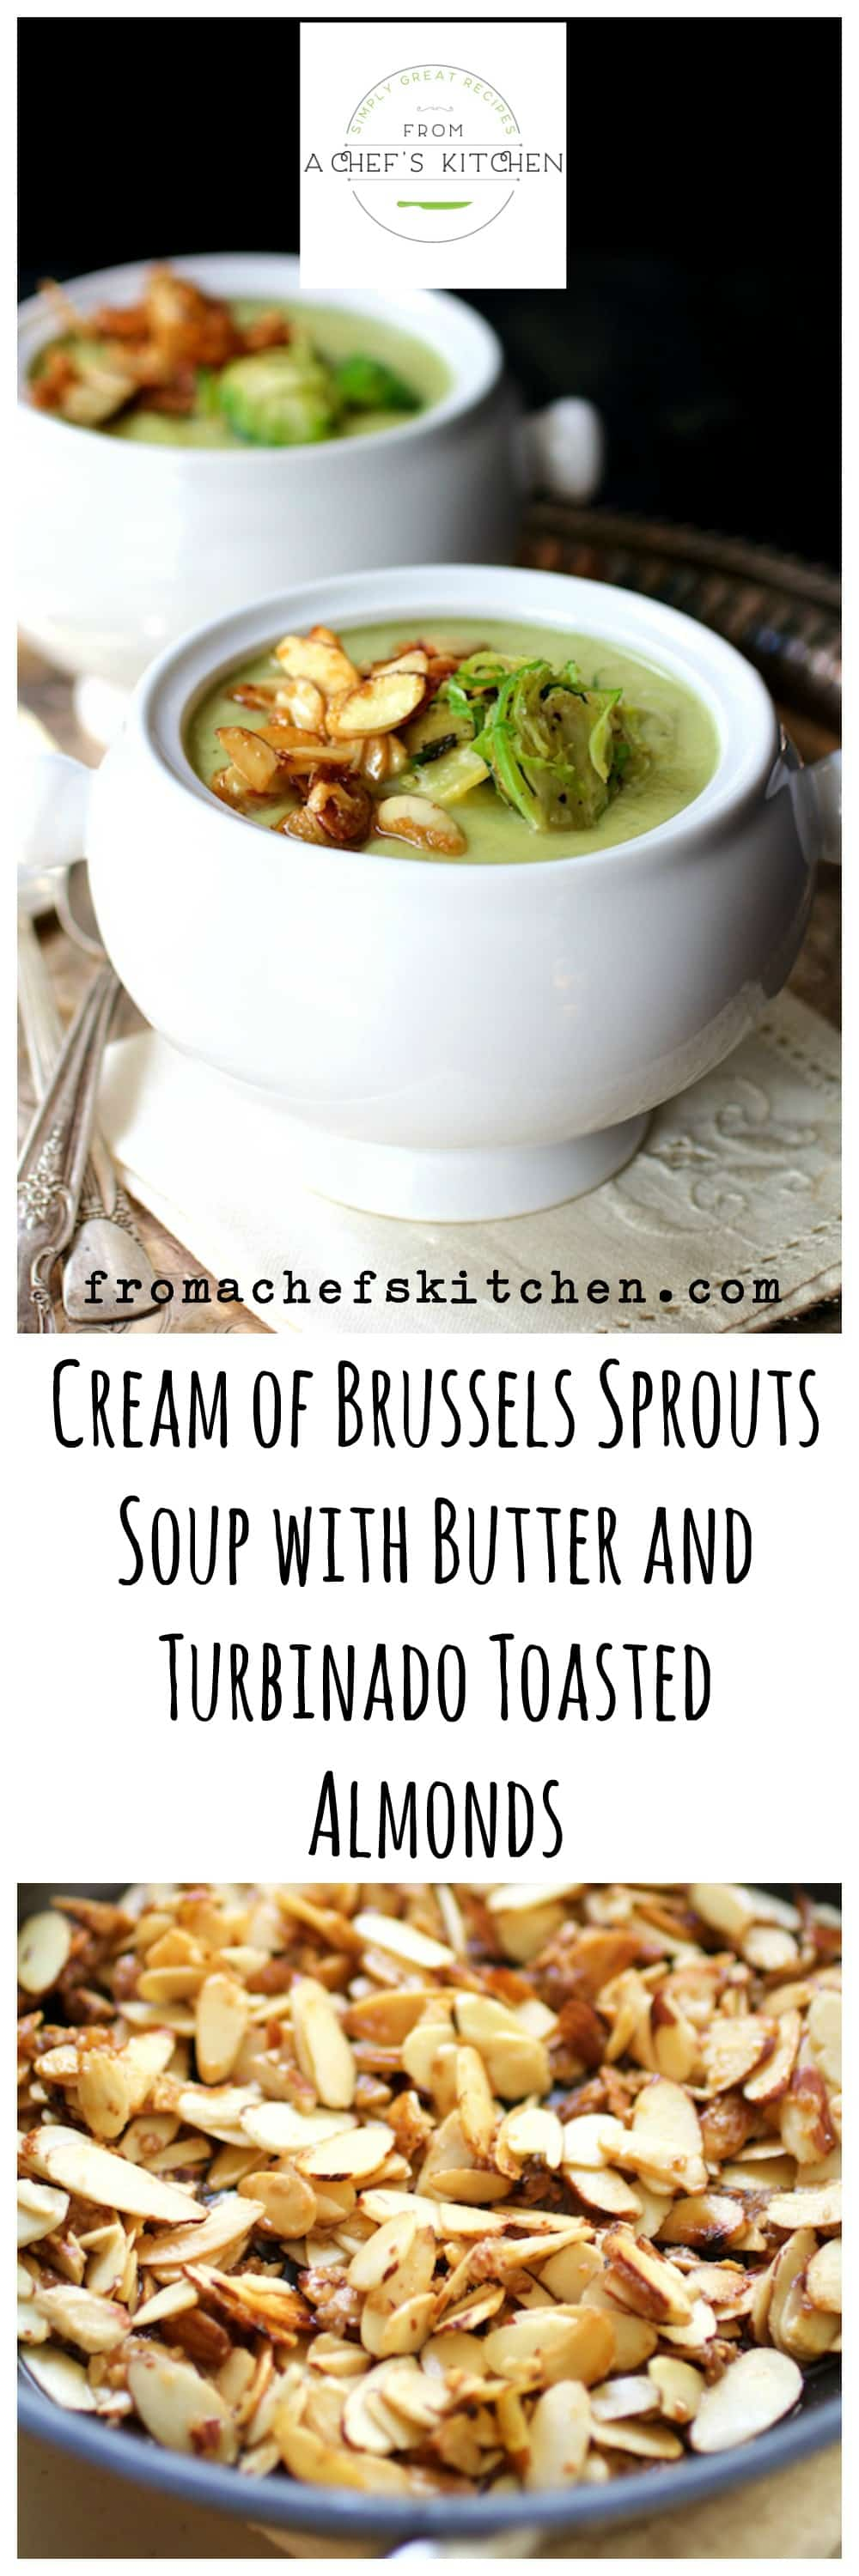 Want to do something creative with Brussels sprouts this holiday season?  Try this show-stopping soup starter!